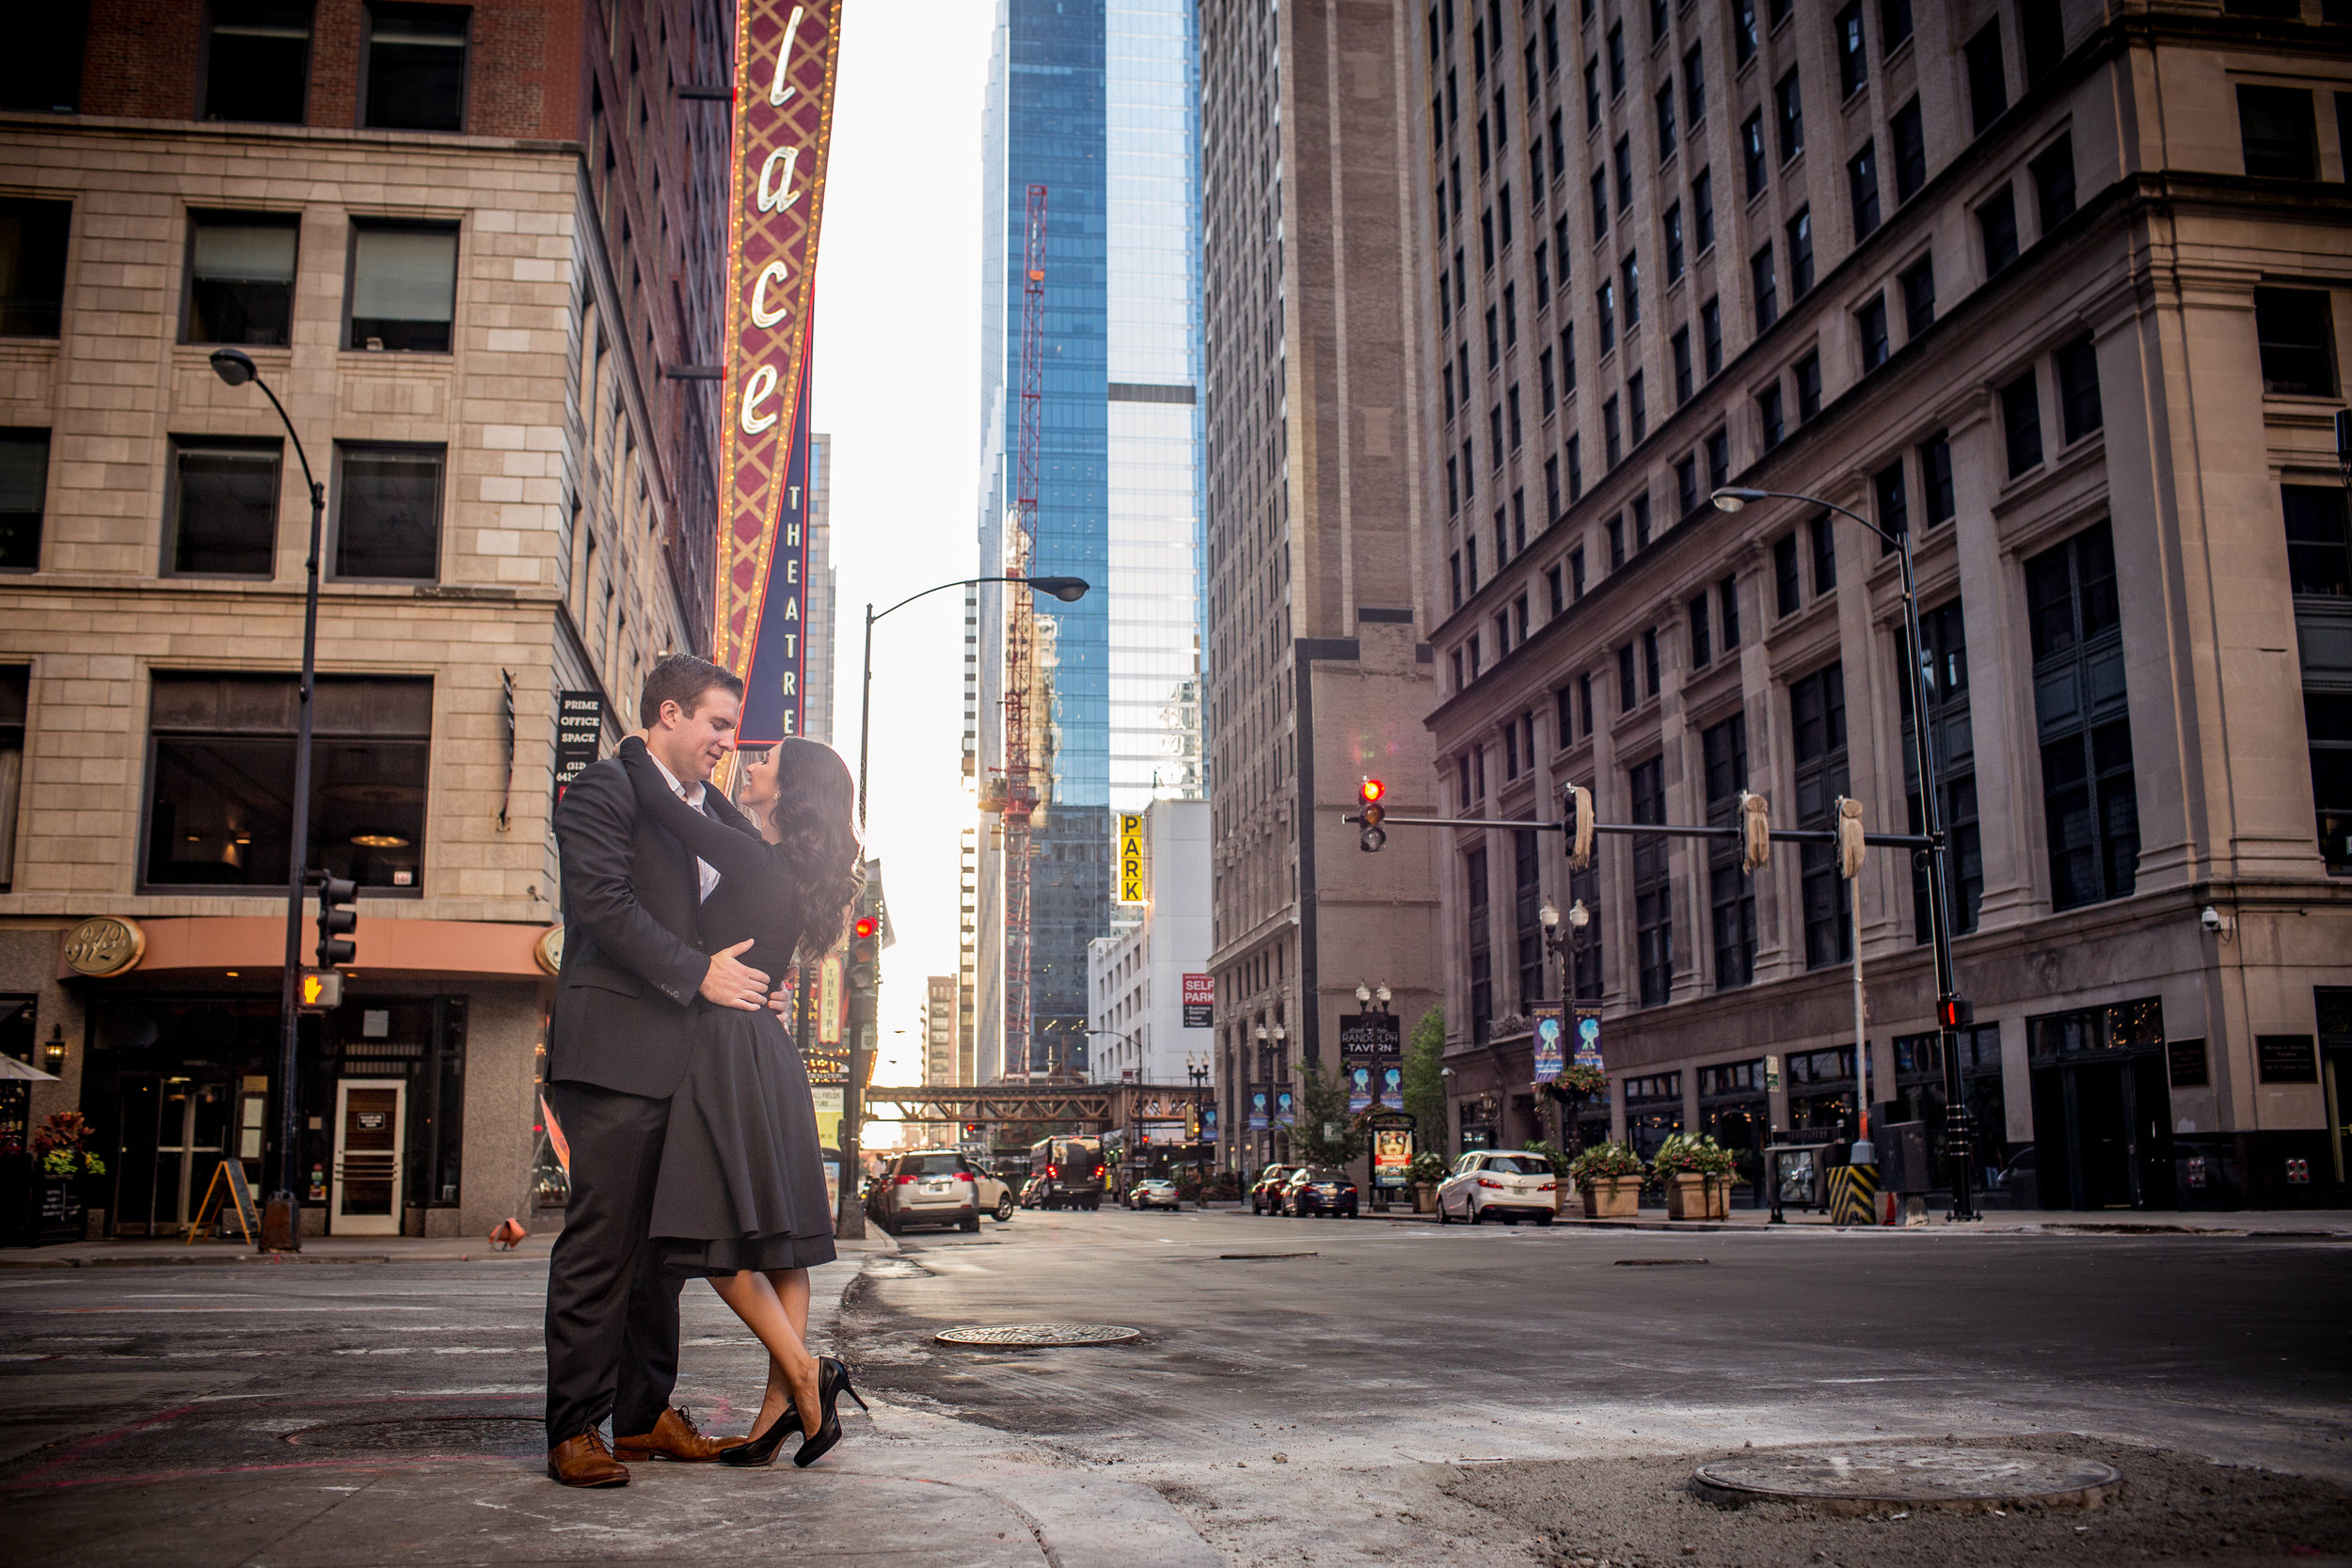 chicago engagement | Gabriella + Tom by Peer Canvas Photography & Films 048.JPG